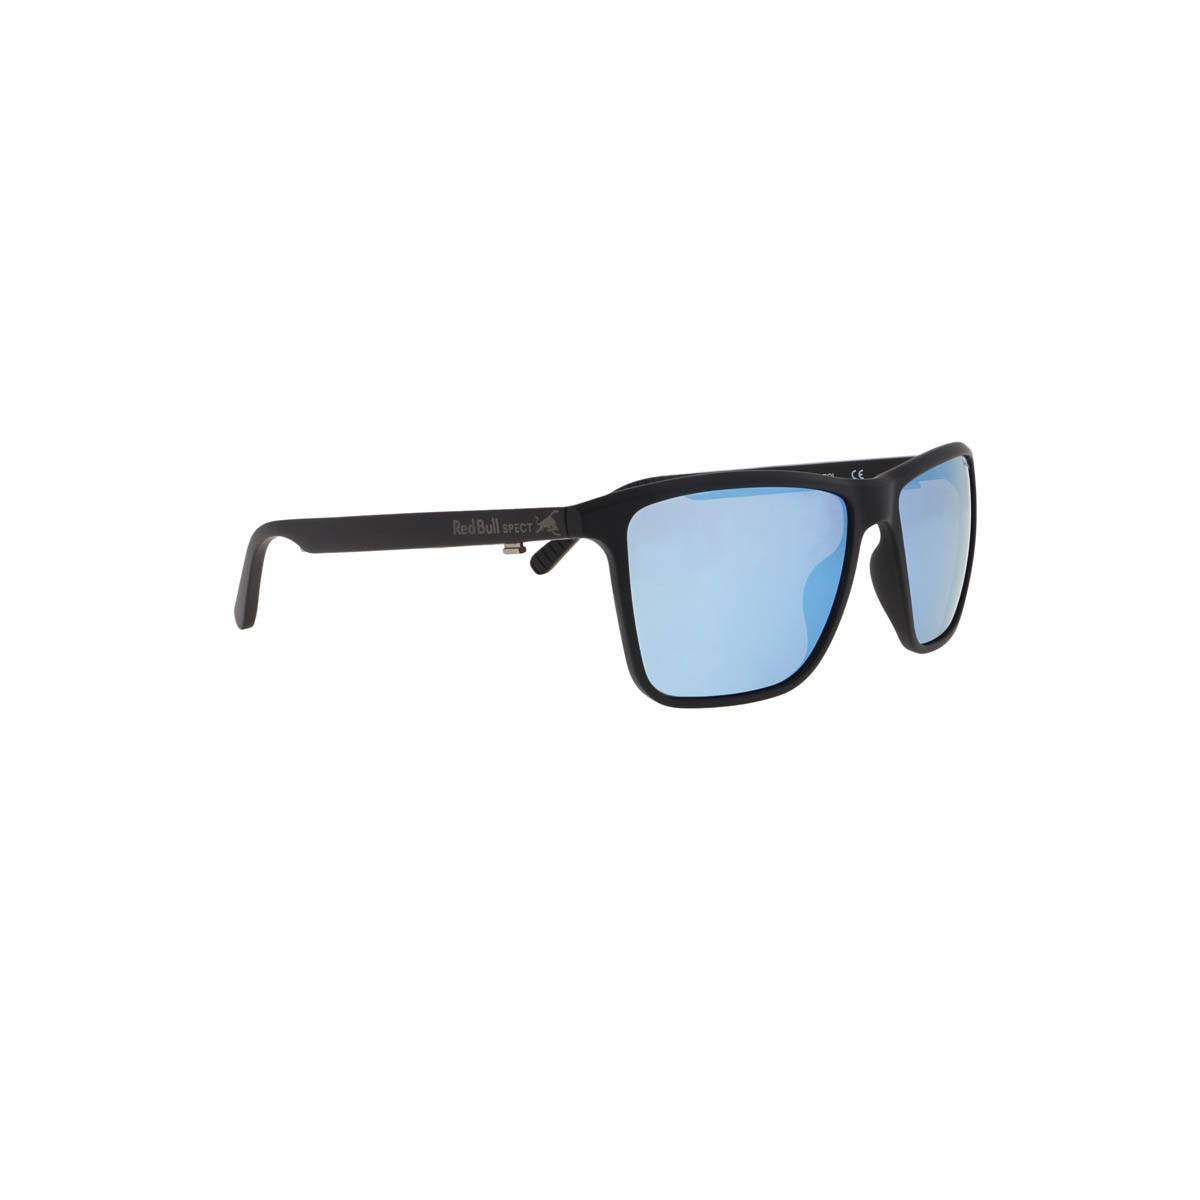 Bull BLADE Occhiali da sole Black Smoke Ice Blue